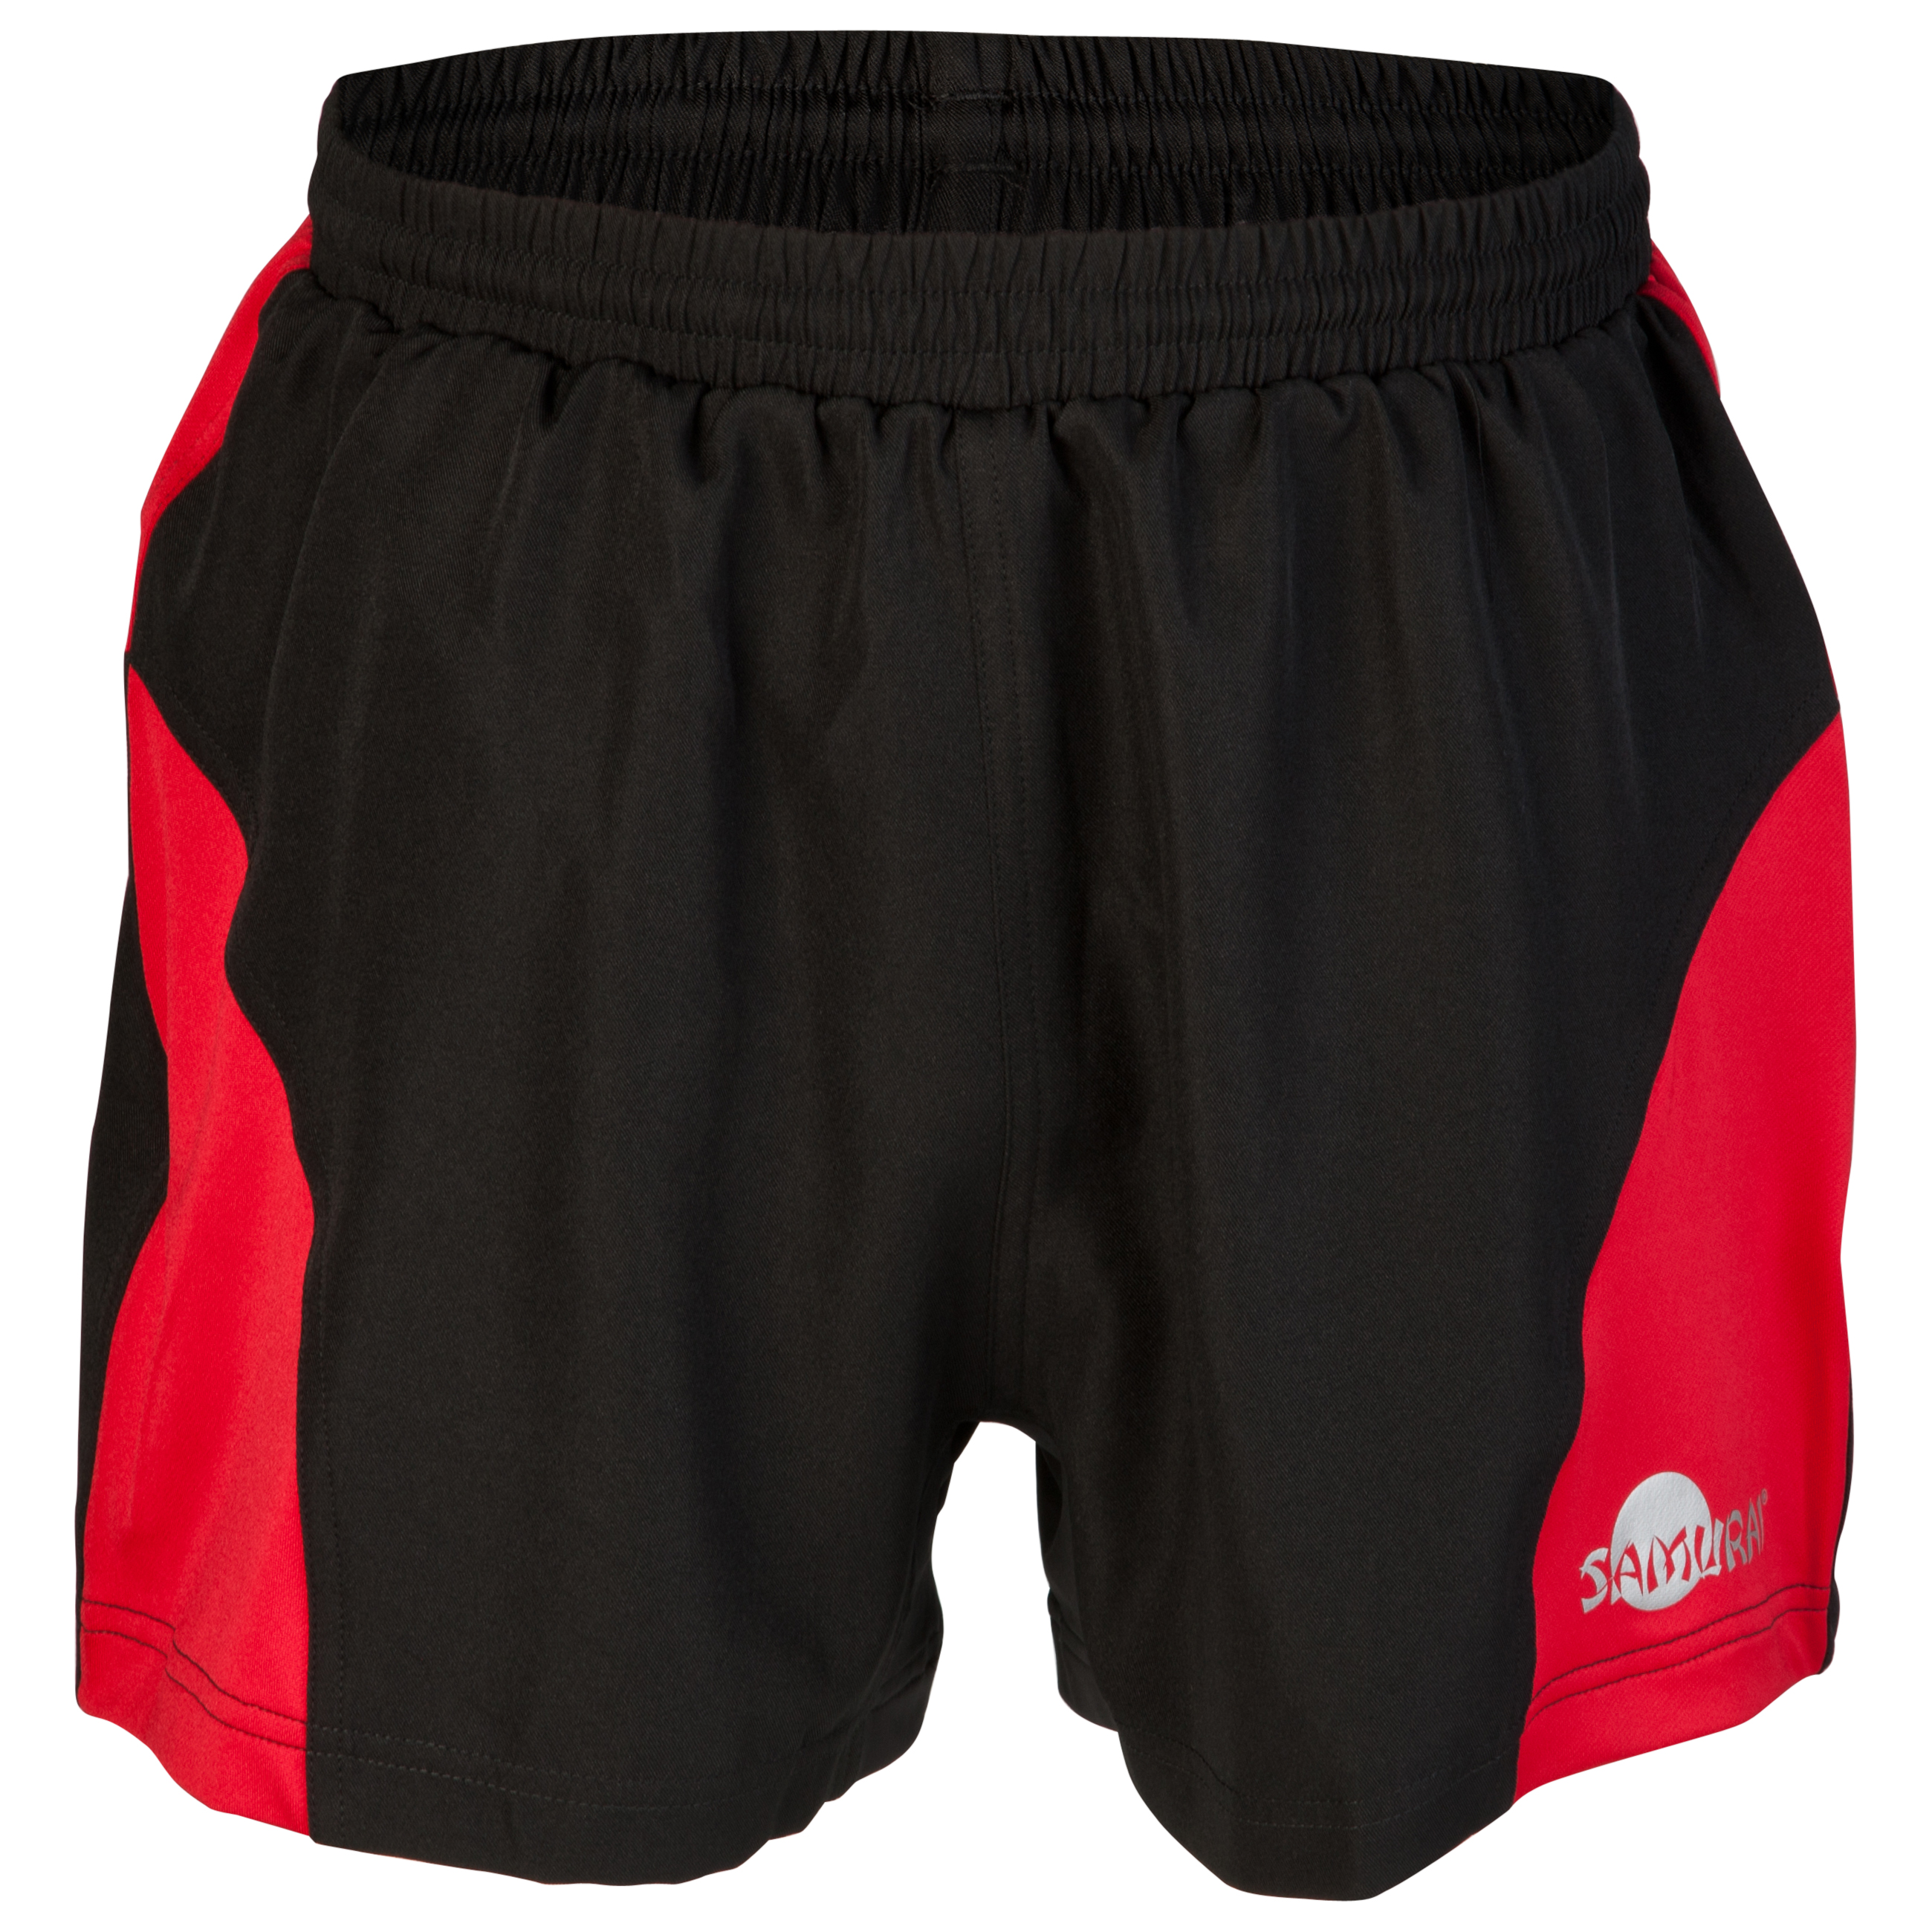 Samurai Rugby Elite Shorts - Black/Red